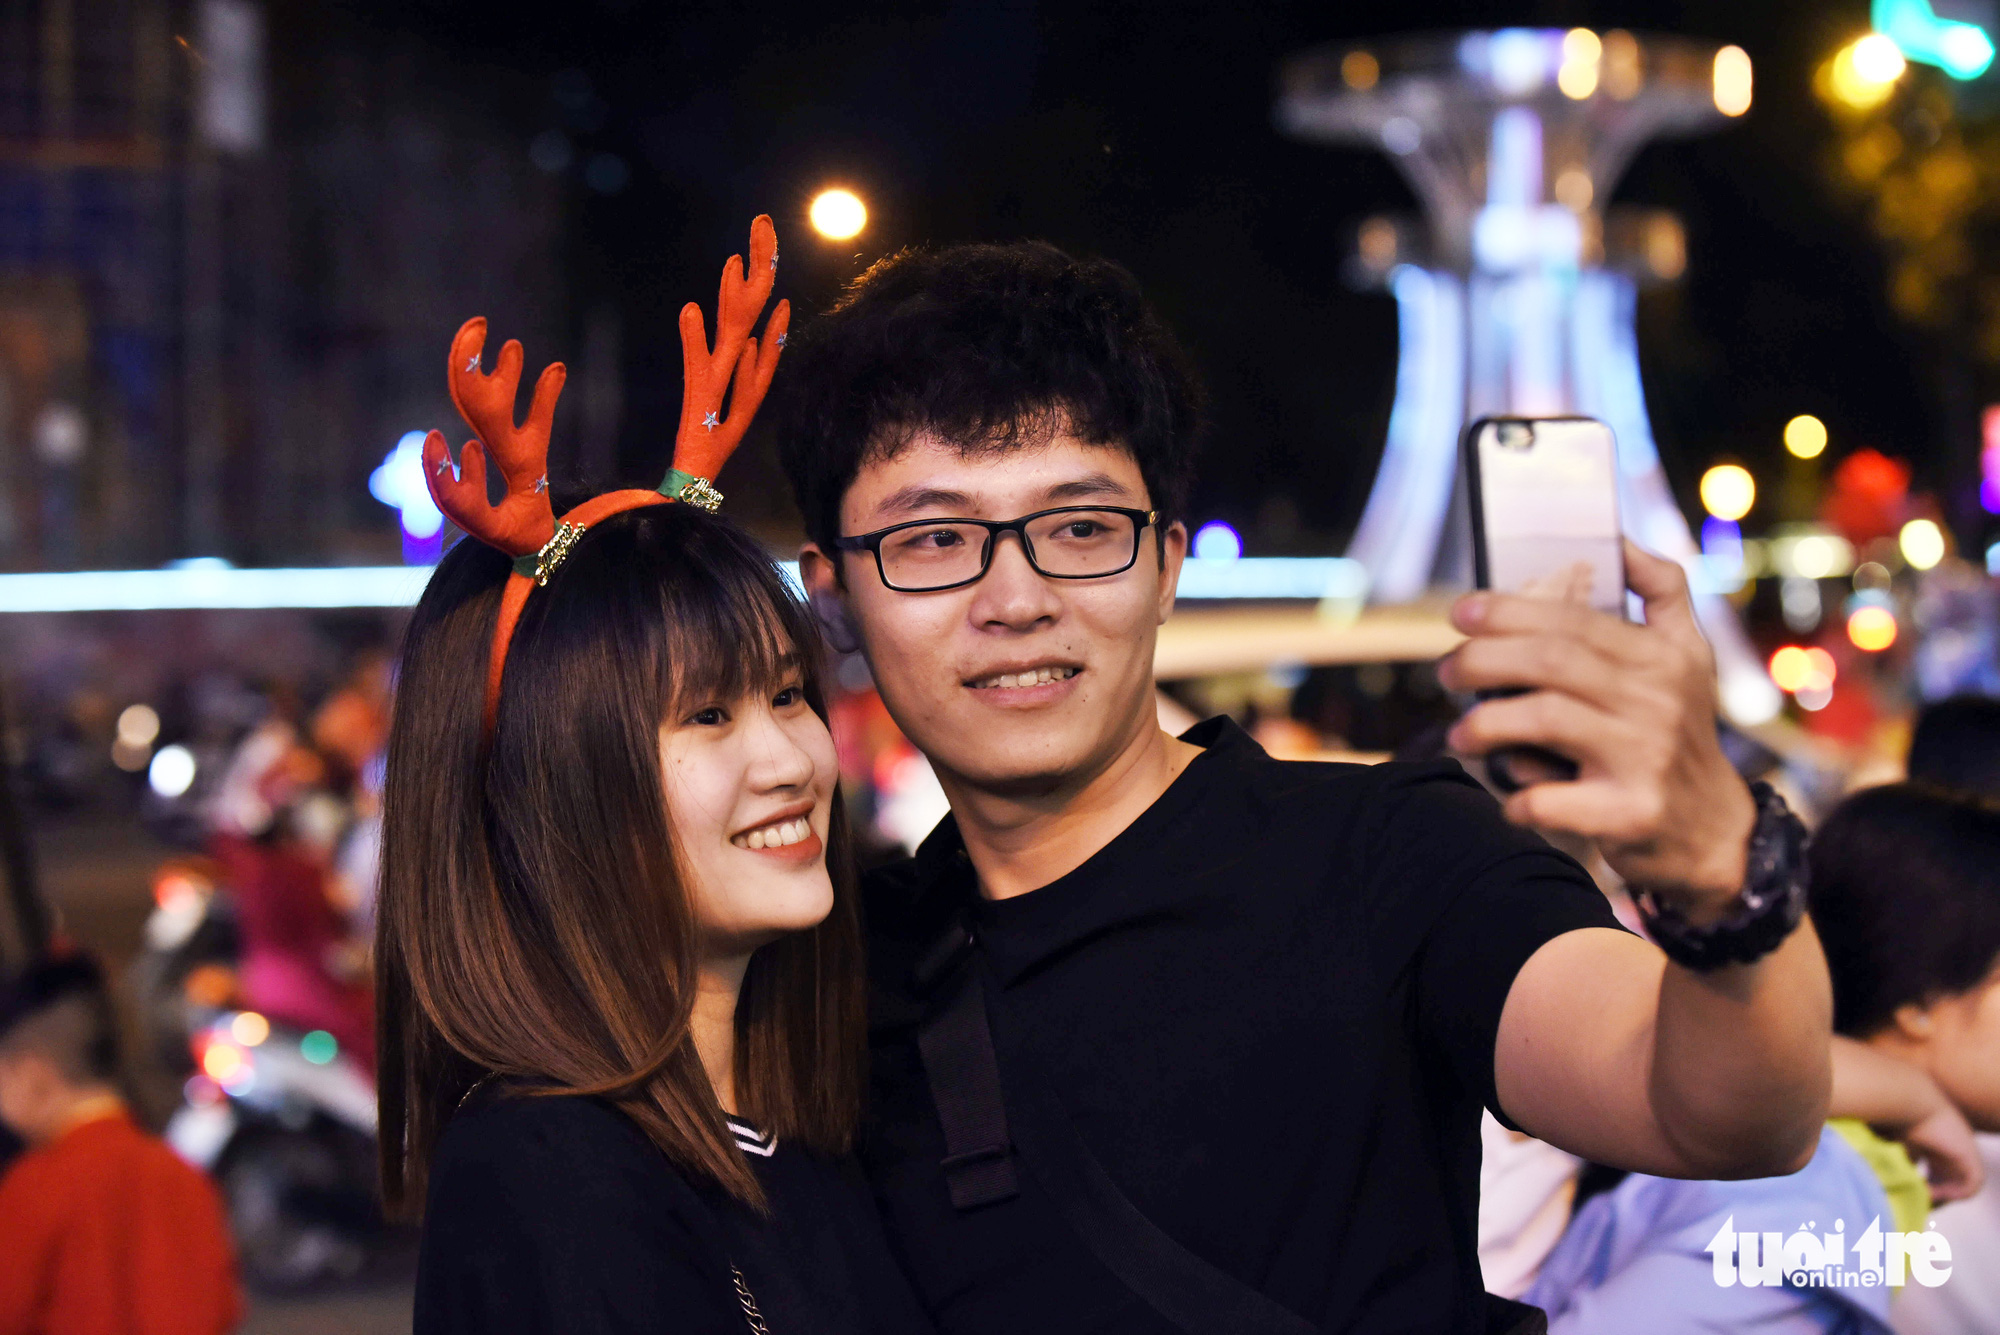 A young couple takes a selfie in Ho Chi Minh City on Christmas Eve, December 24, 2019.